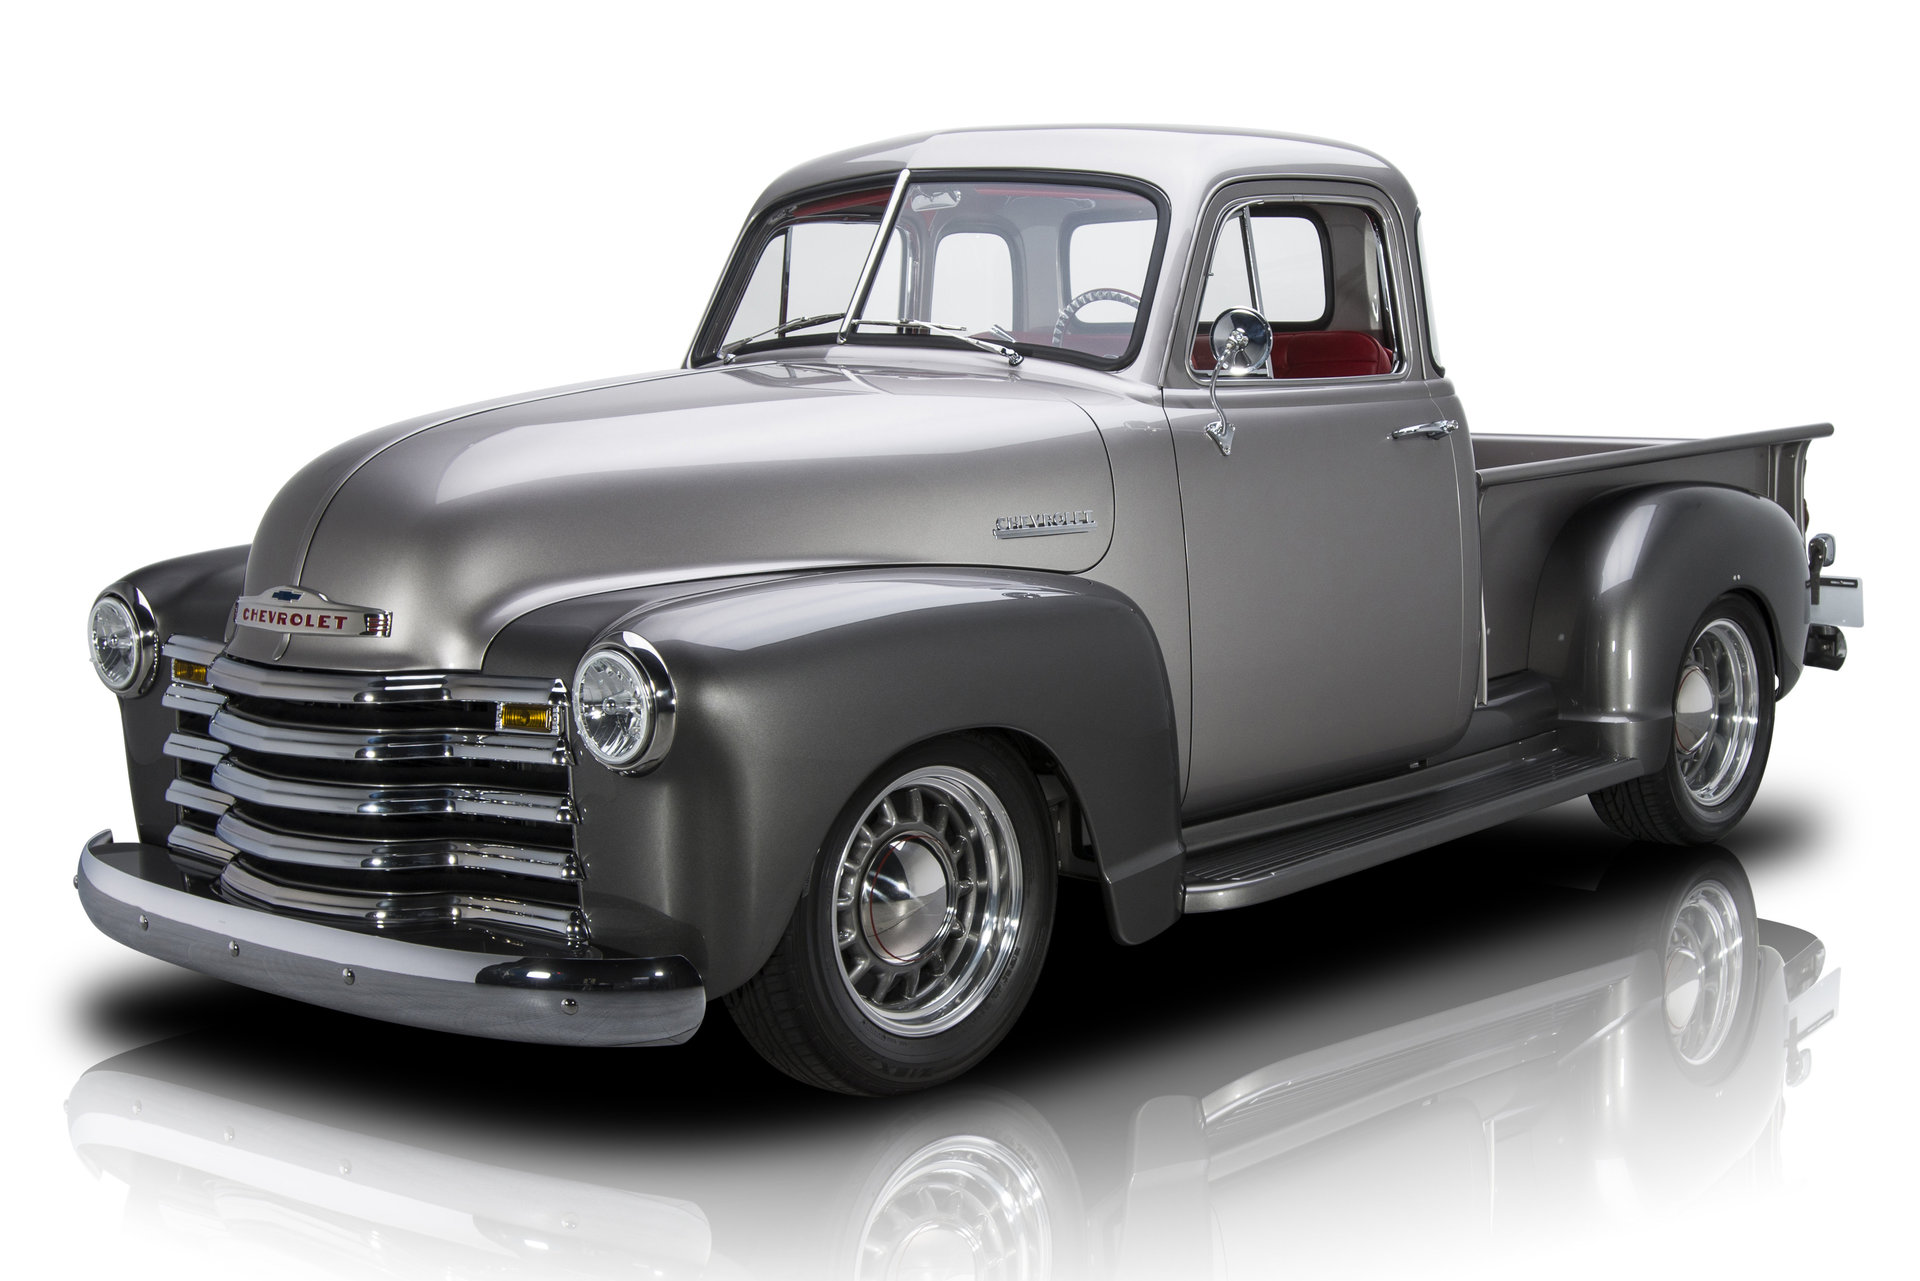 400839ad74ef36 hd 1952 chevrolet 3100 pickup truck